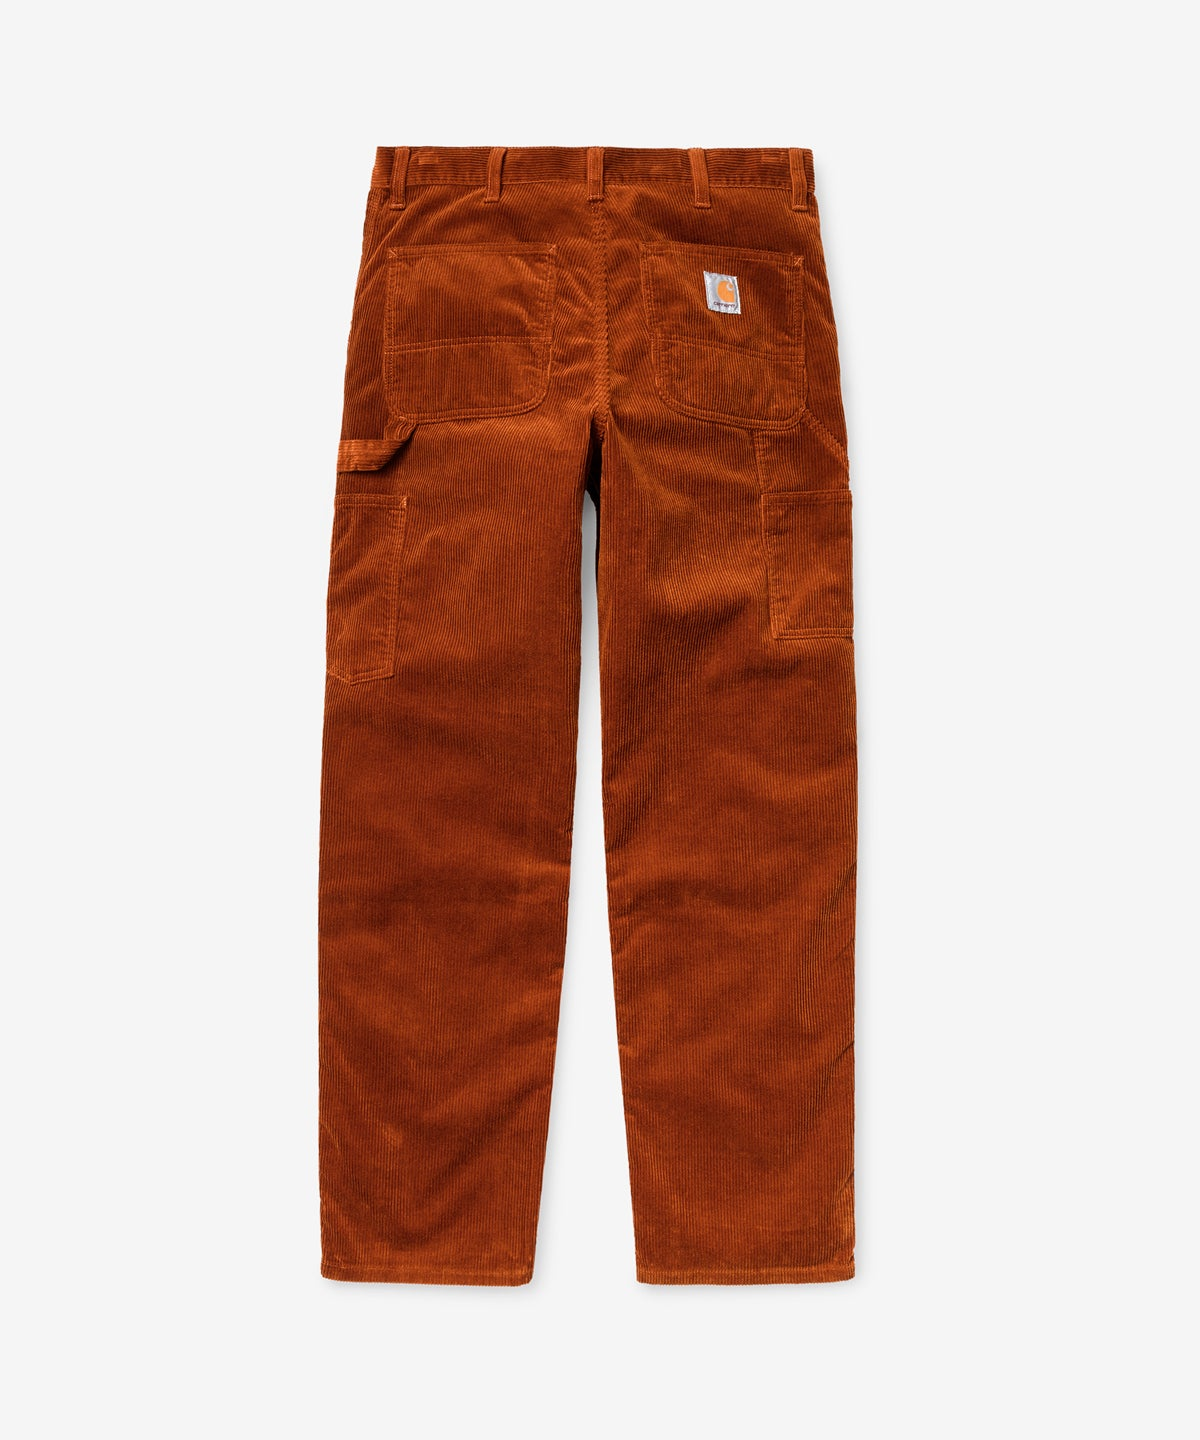 Image of CARHARTT WIP_SINGLE KNEE PANT (CORDUROY) :::BRANDY:::